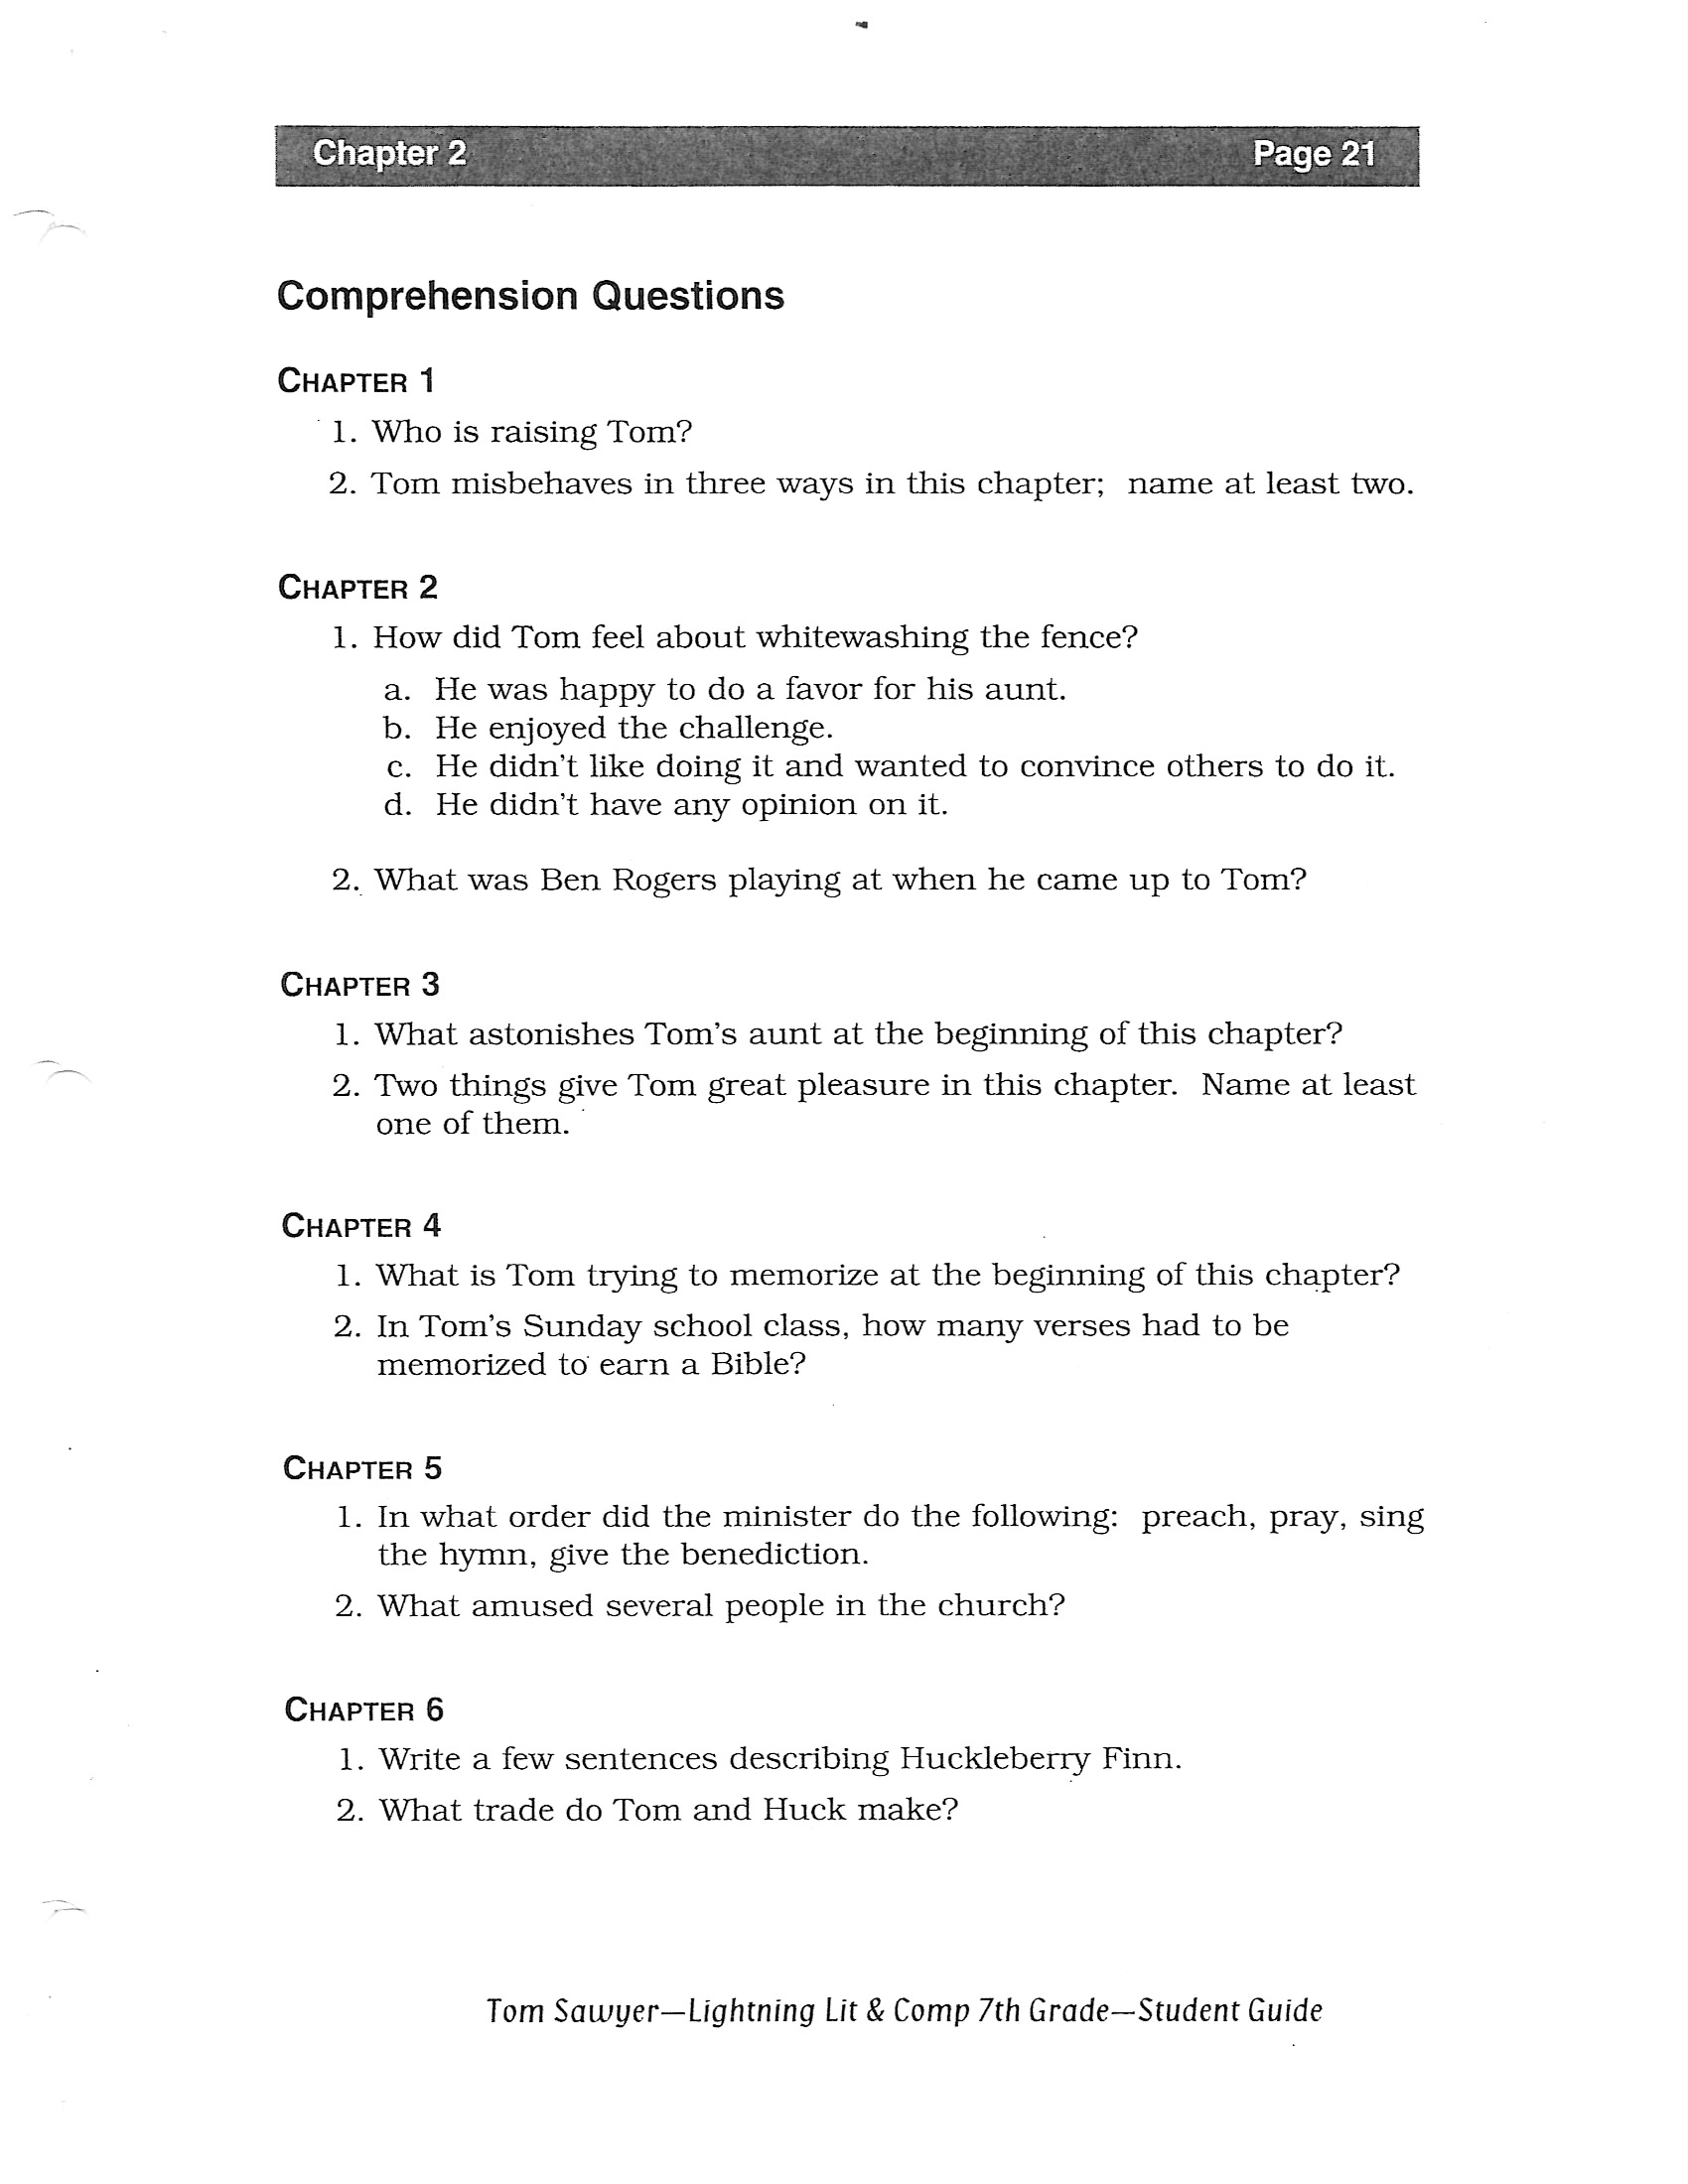 sawyer essay test essay on adventures of tom sawyer 1388 words cram